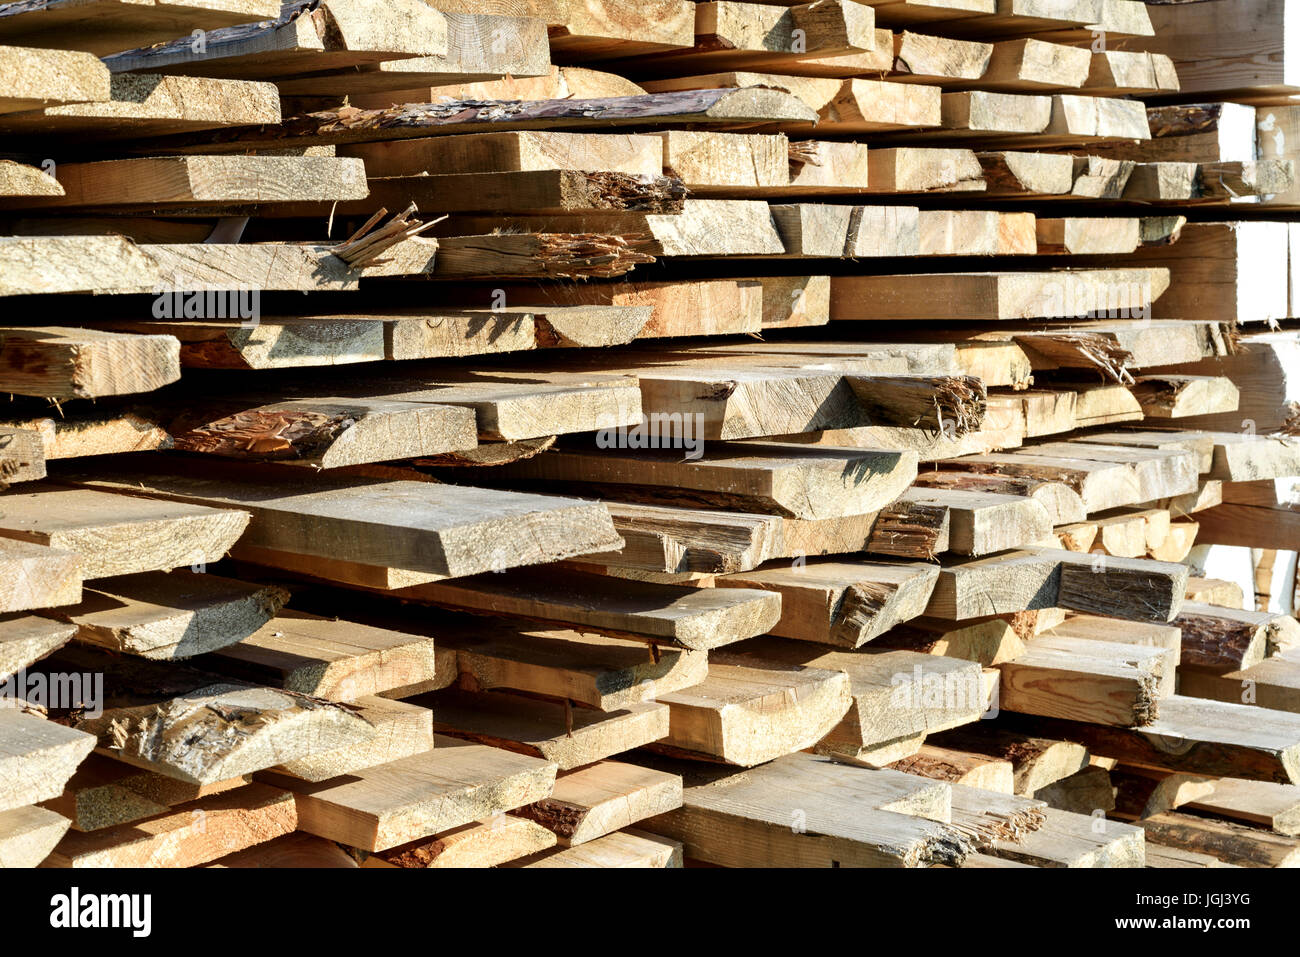 Roughly cut piles of timber planks for home and design construction in sunlight Stock Photo